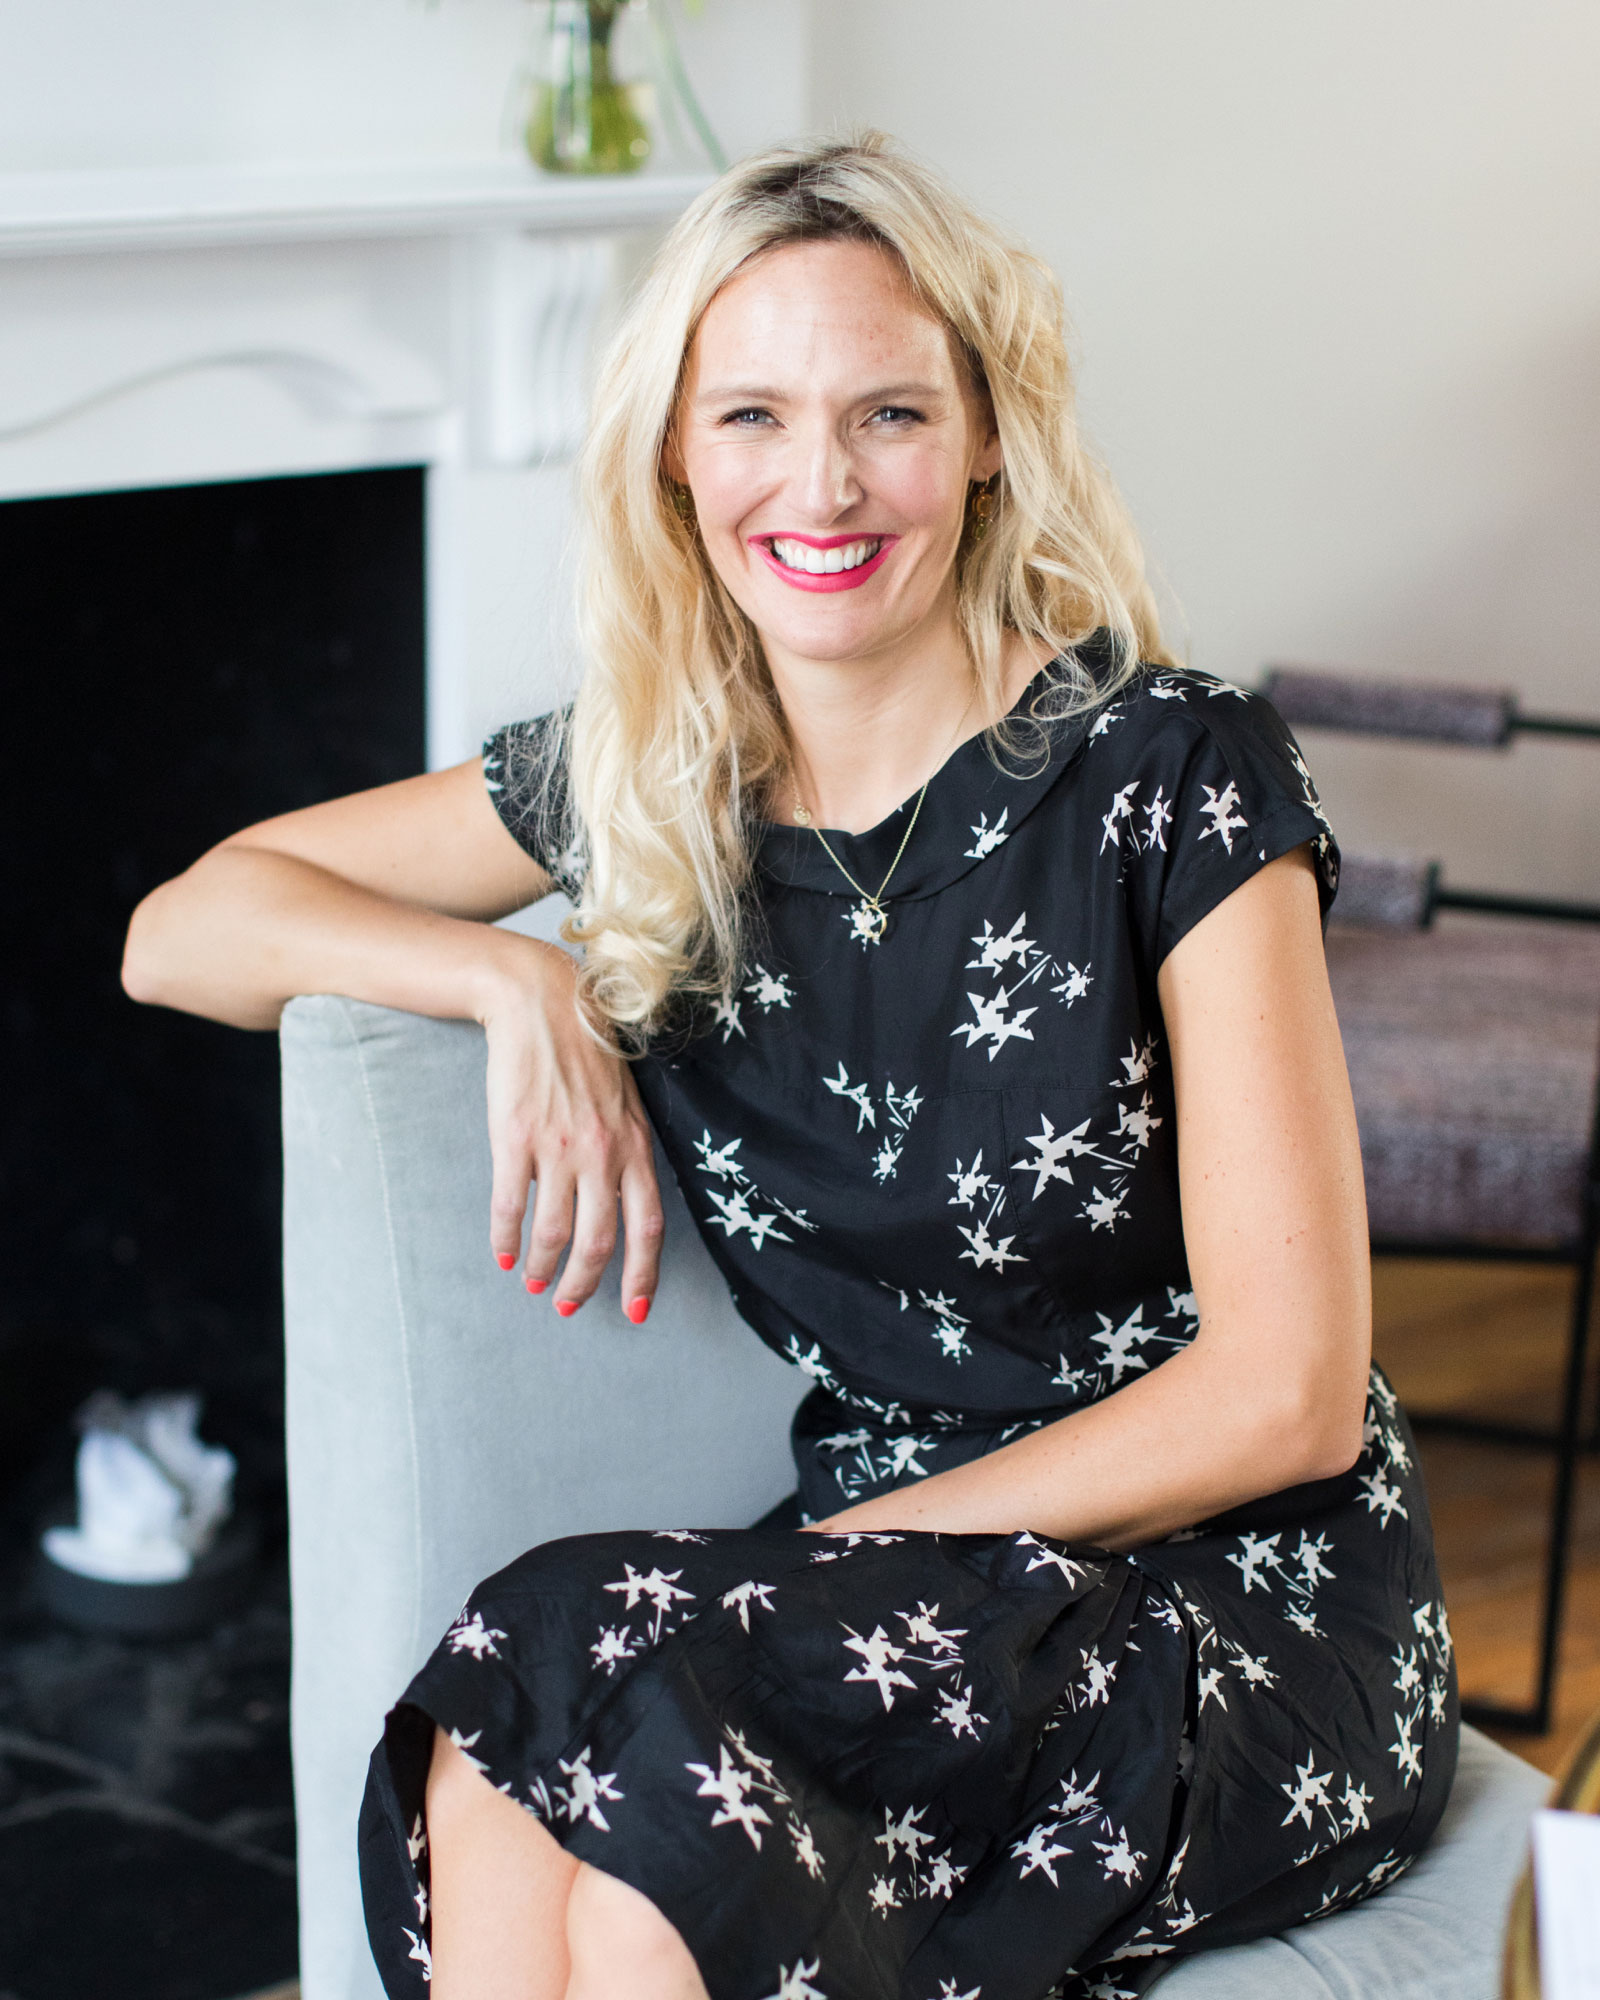 Rosie Dalling, Founder of Healthy Selfish